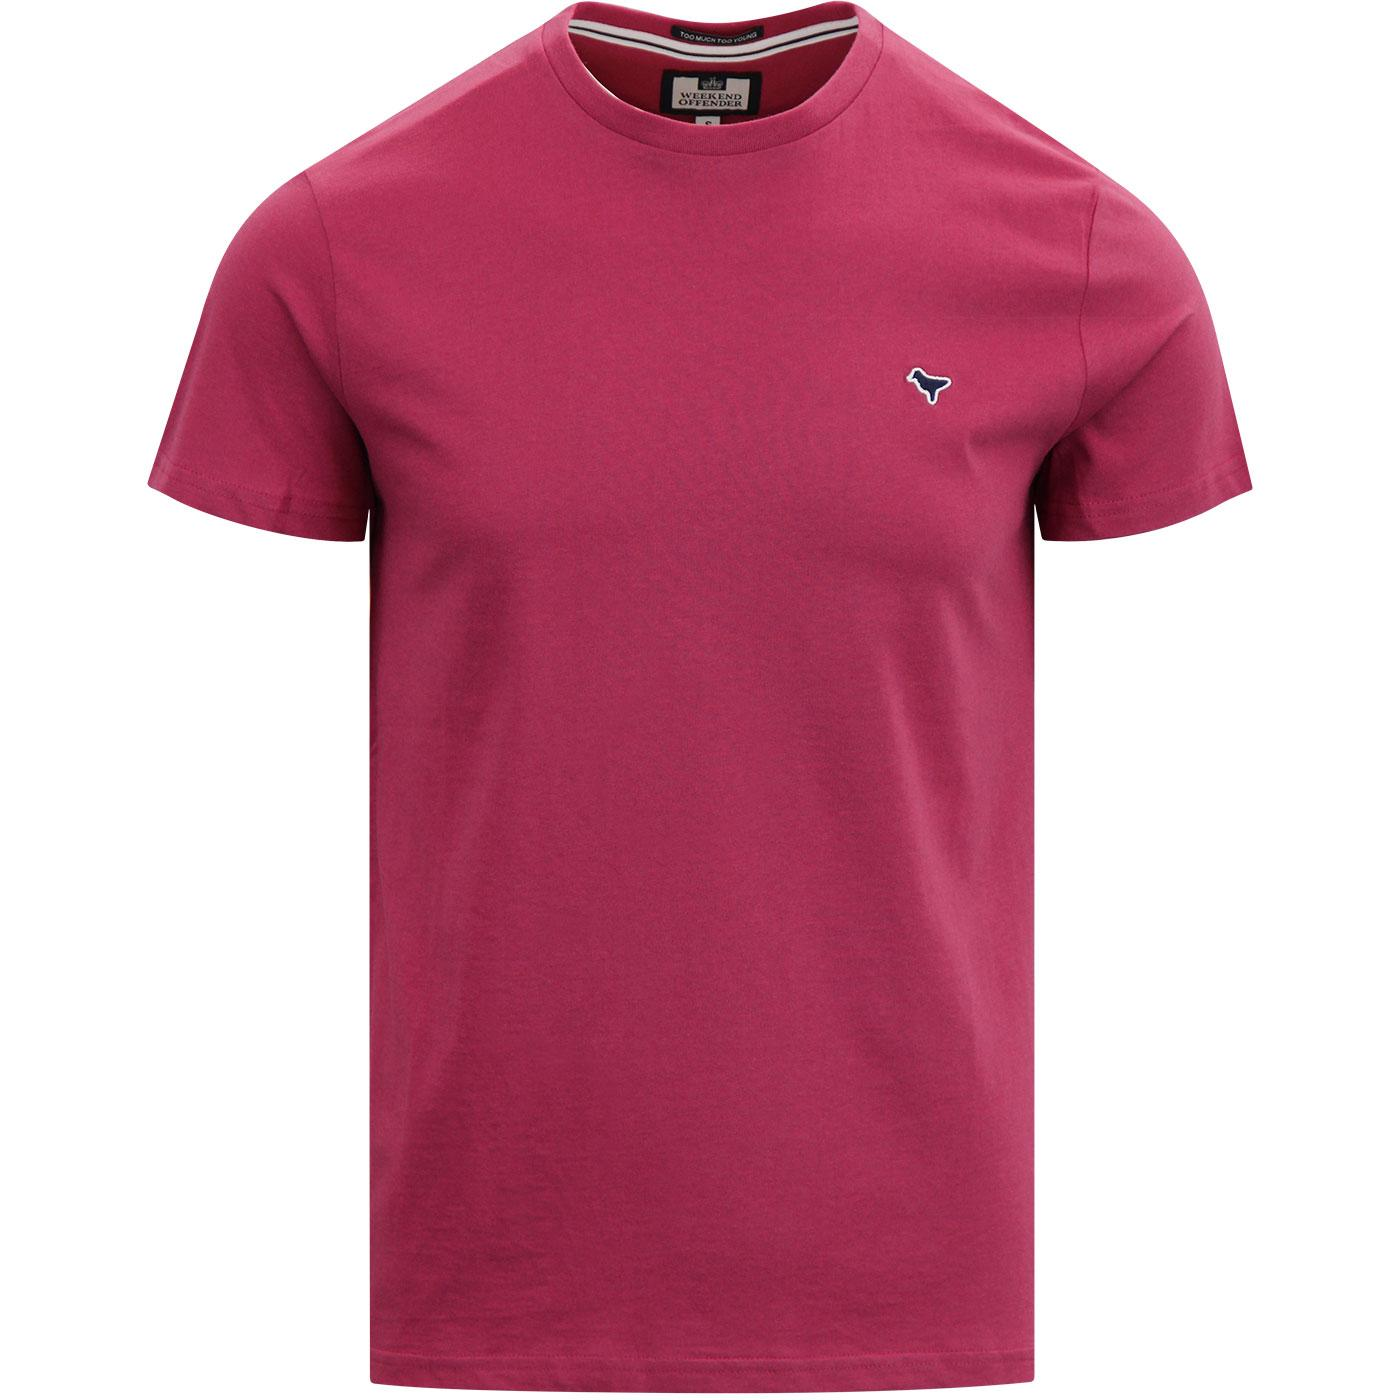 Enzo WEEKEND OFFENDER Retro T-Shirt Fuchsia